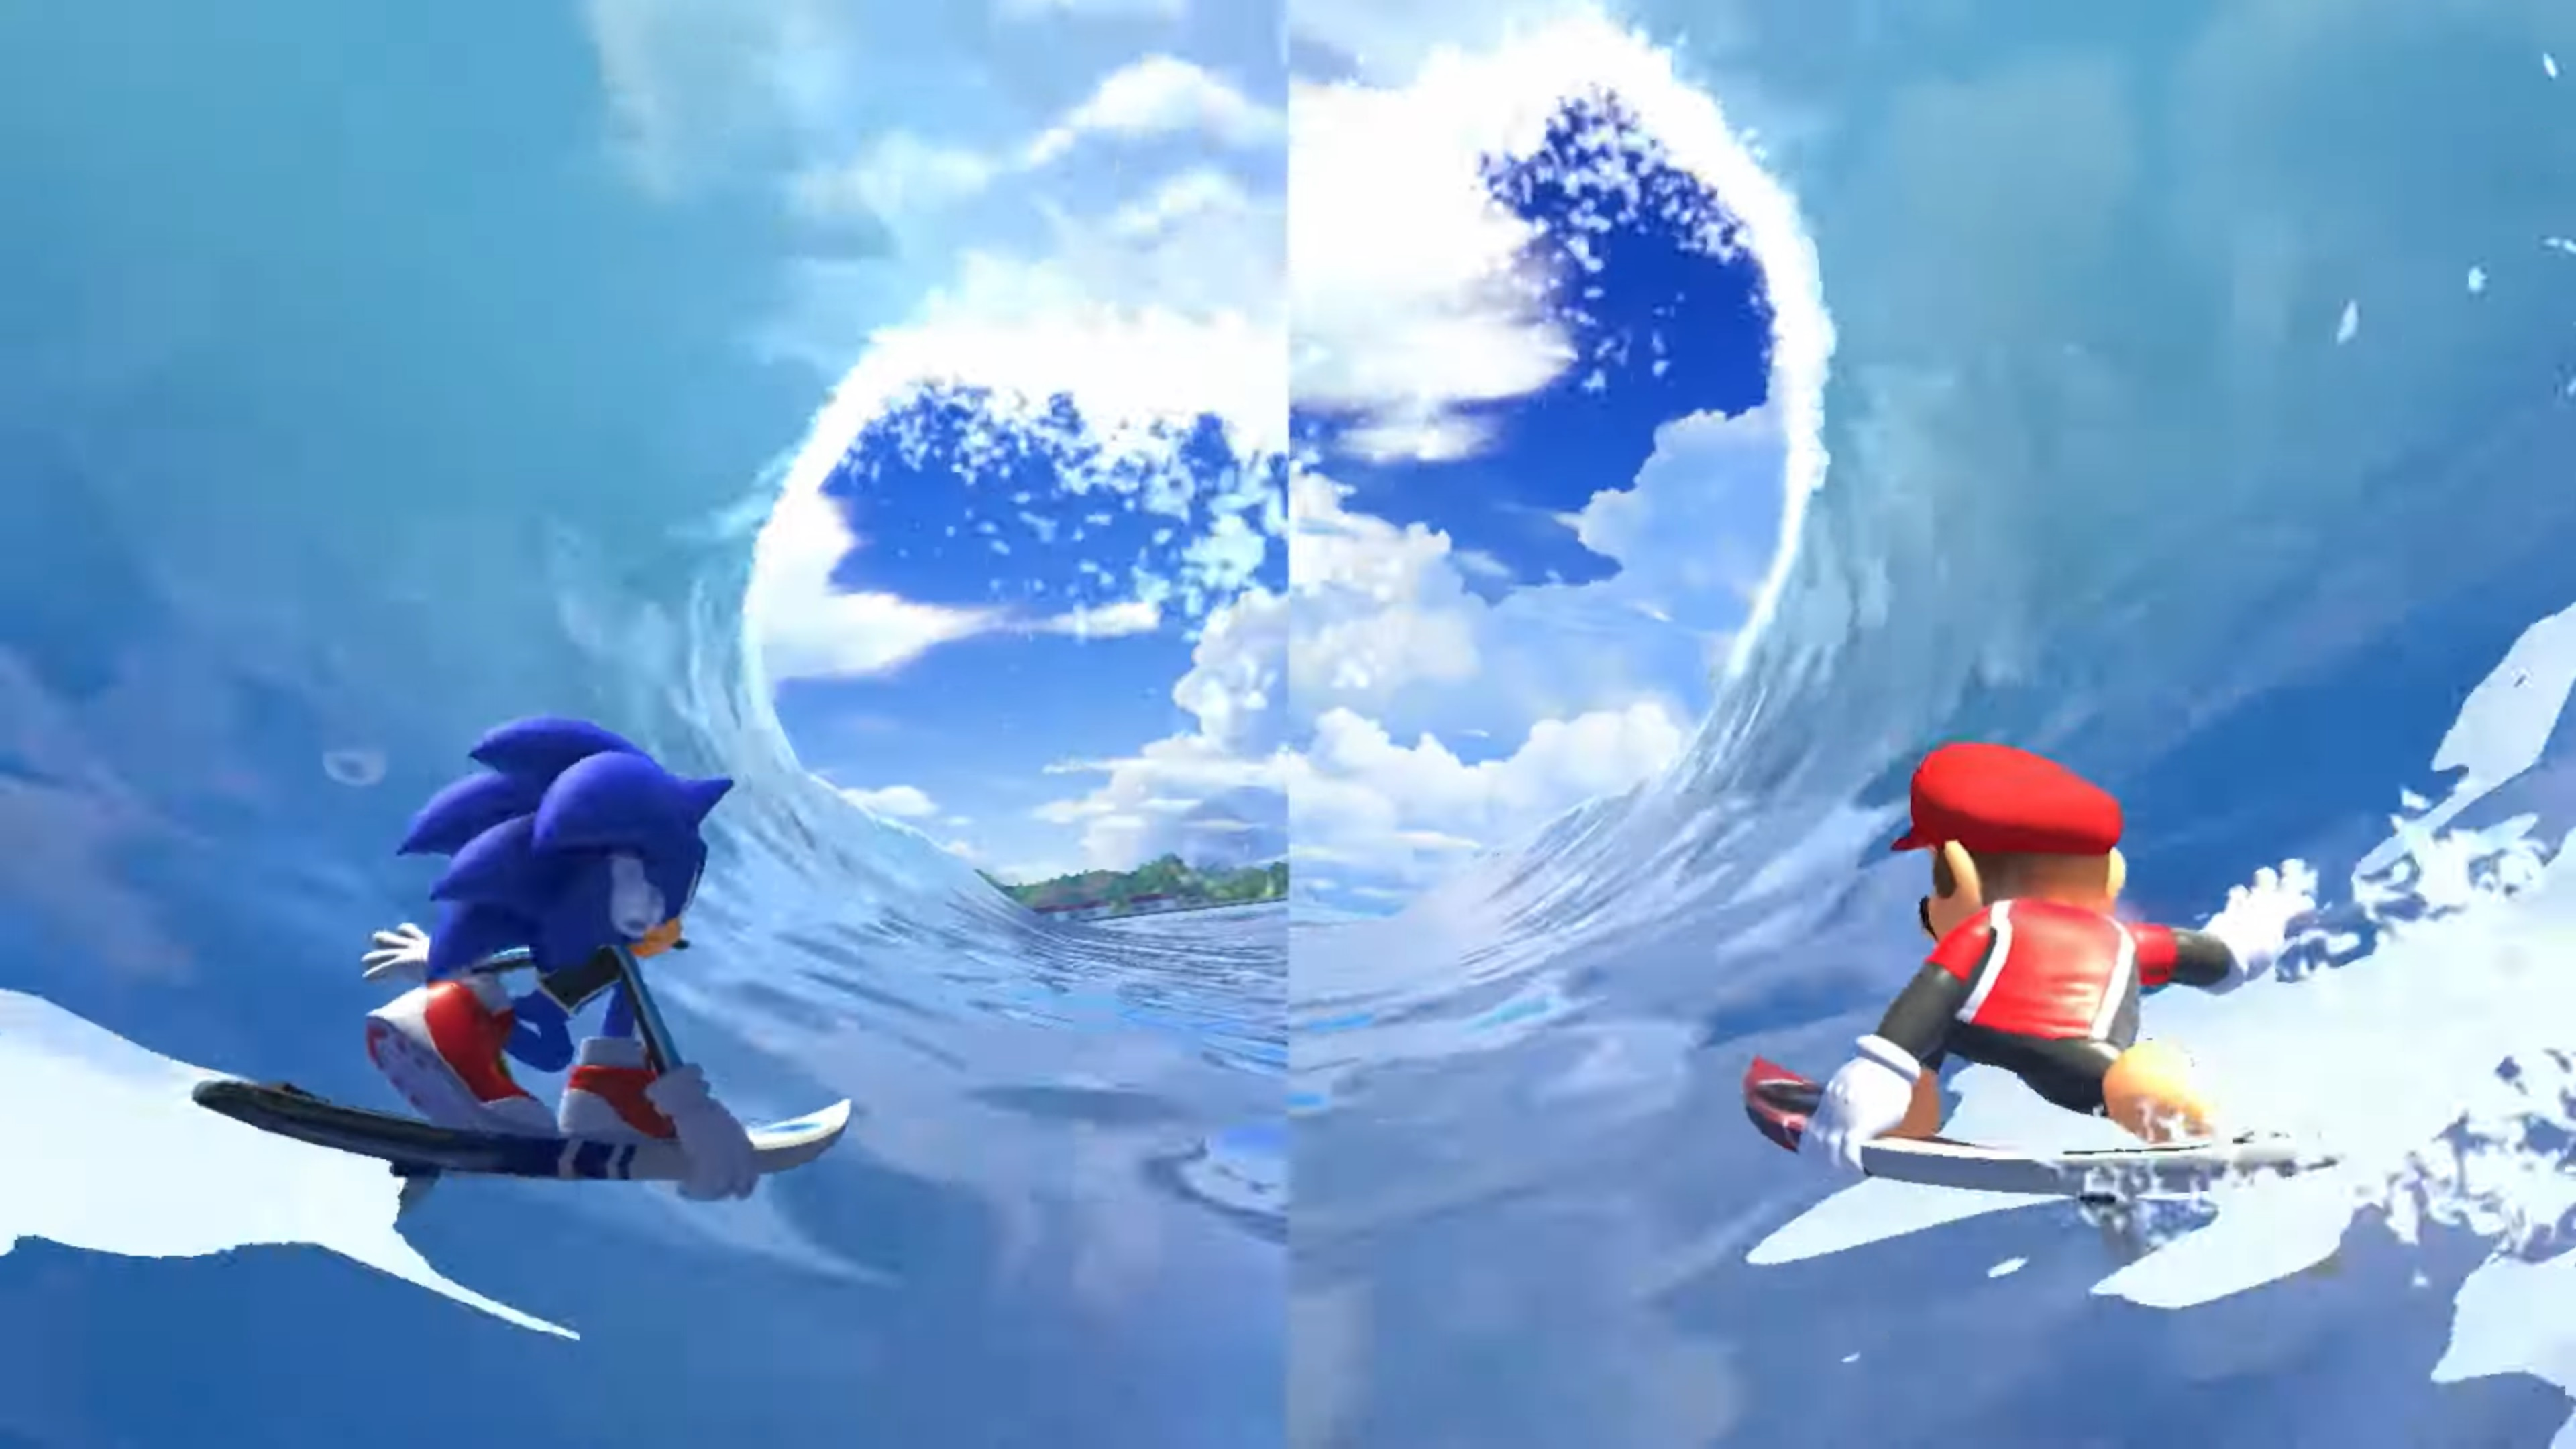 Mario And Sonic 2020 Winter Olympics.Sonic Team Boss Says Sonic Doesn T Take Off His Shoes Which